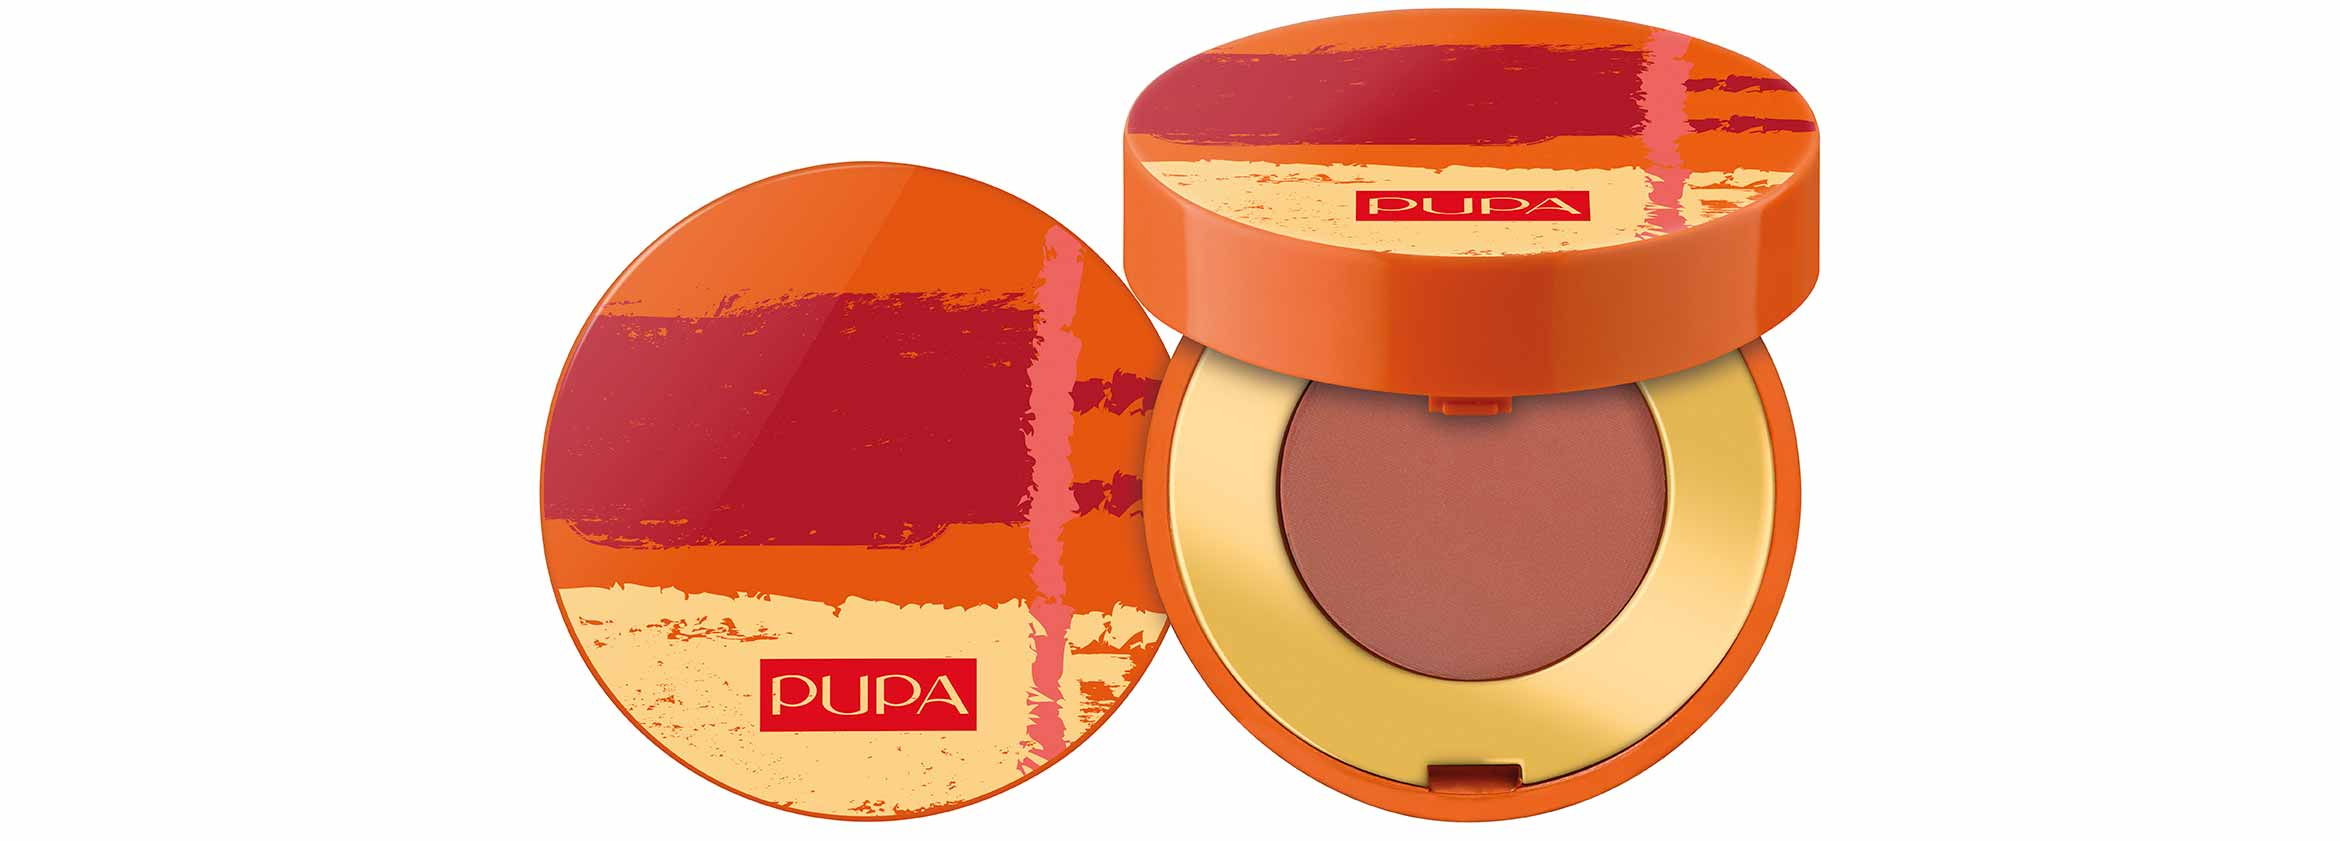 pupa summer escape intense shadow